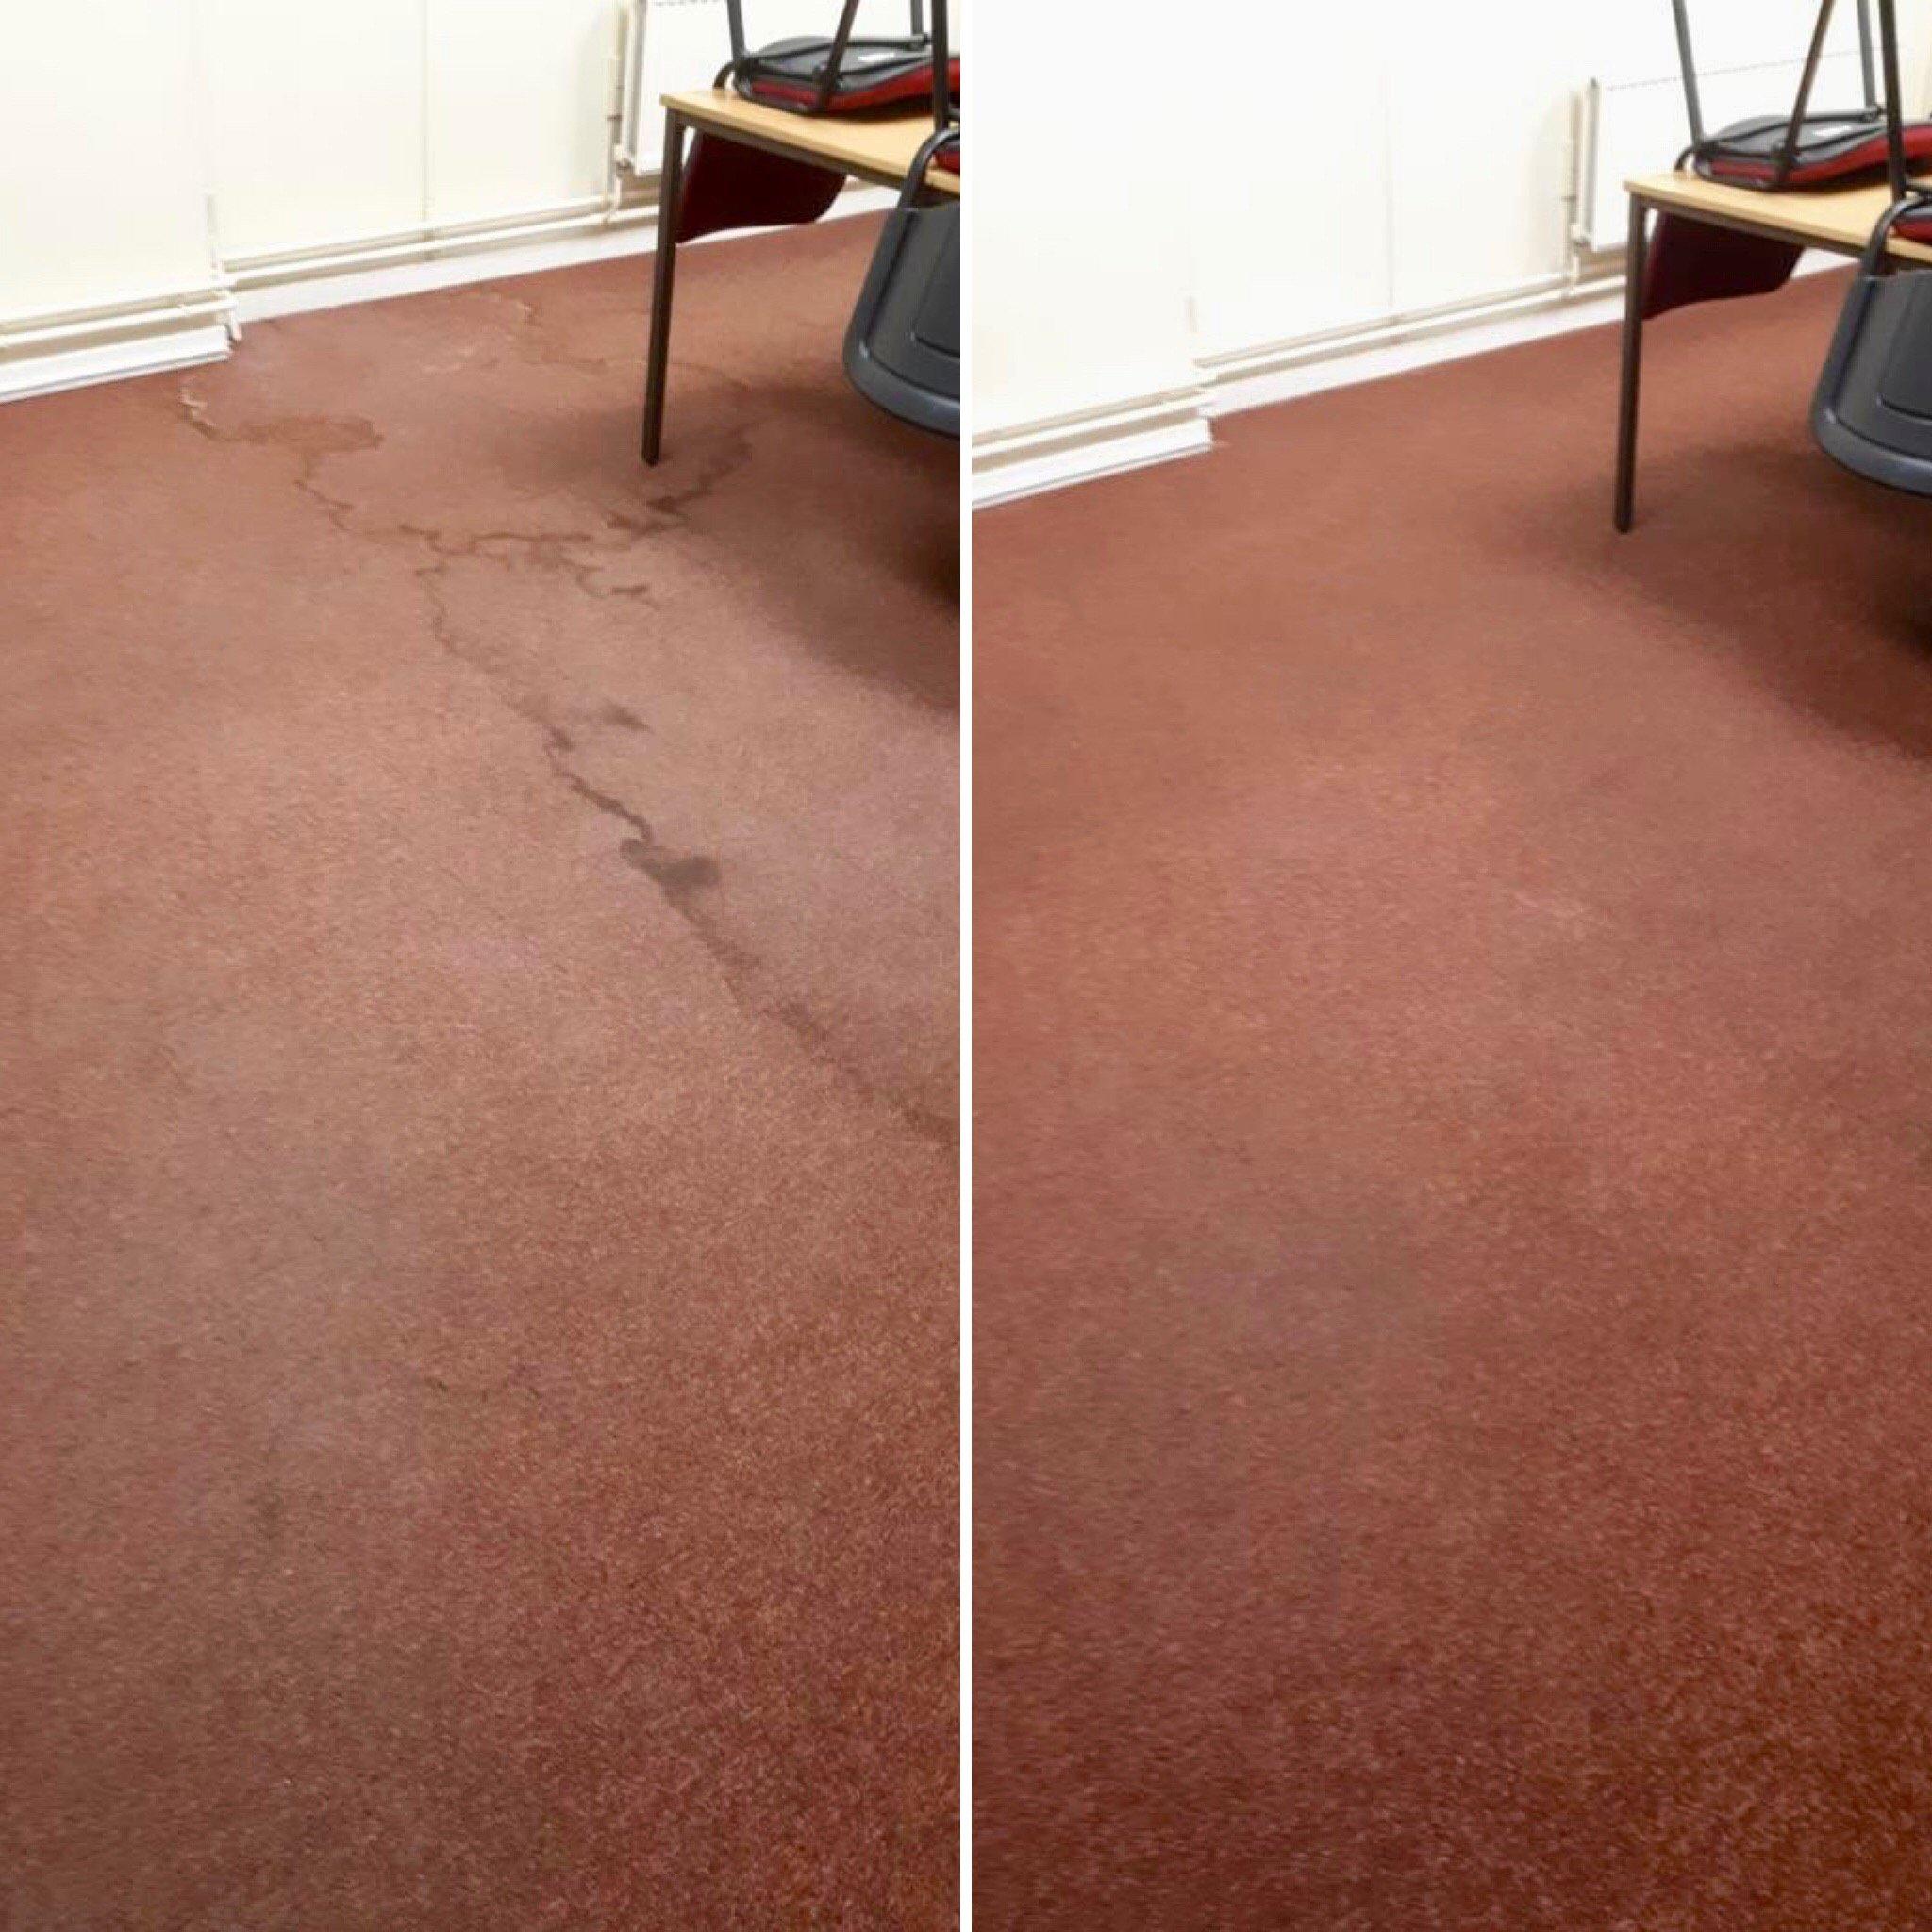 Carpet Cleaning Services in Leeds that comply with health and safety regulations